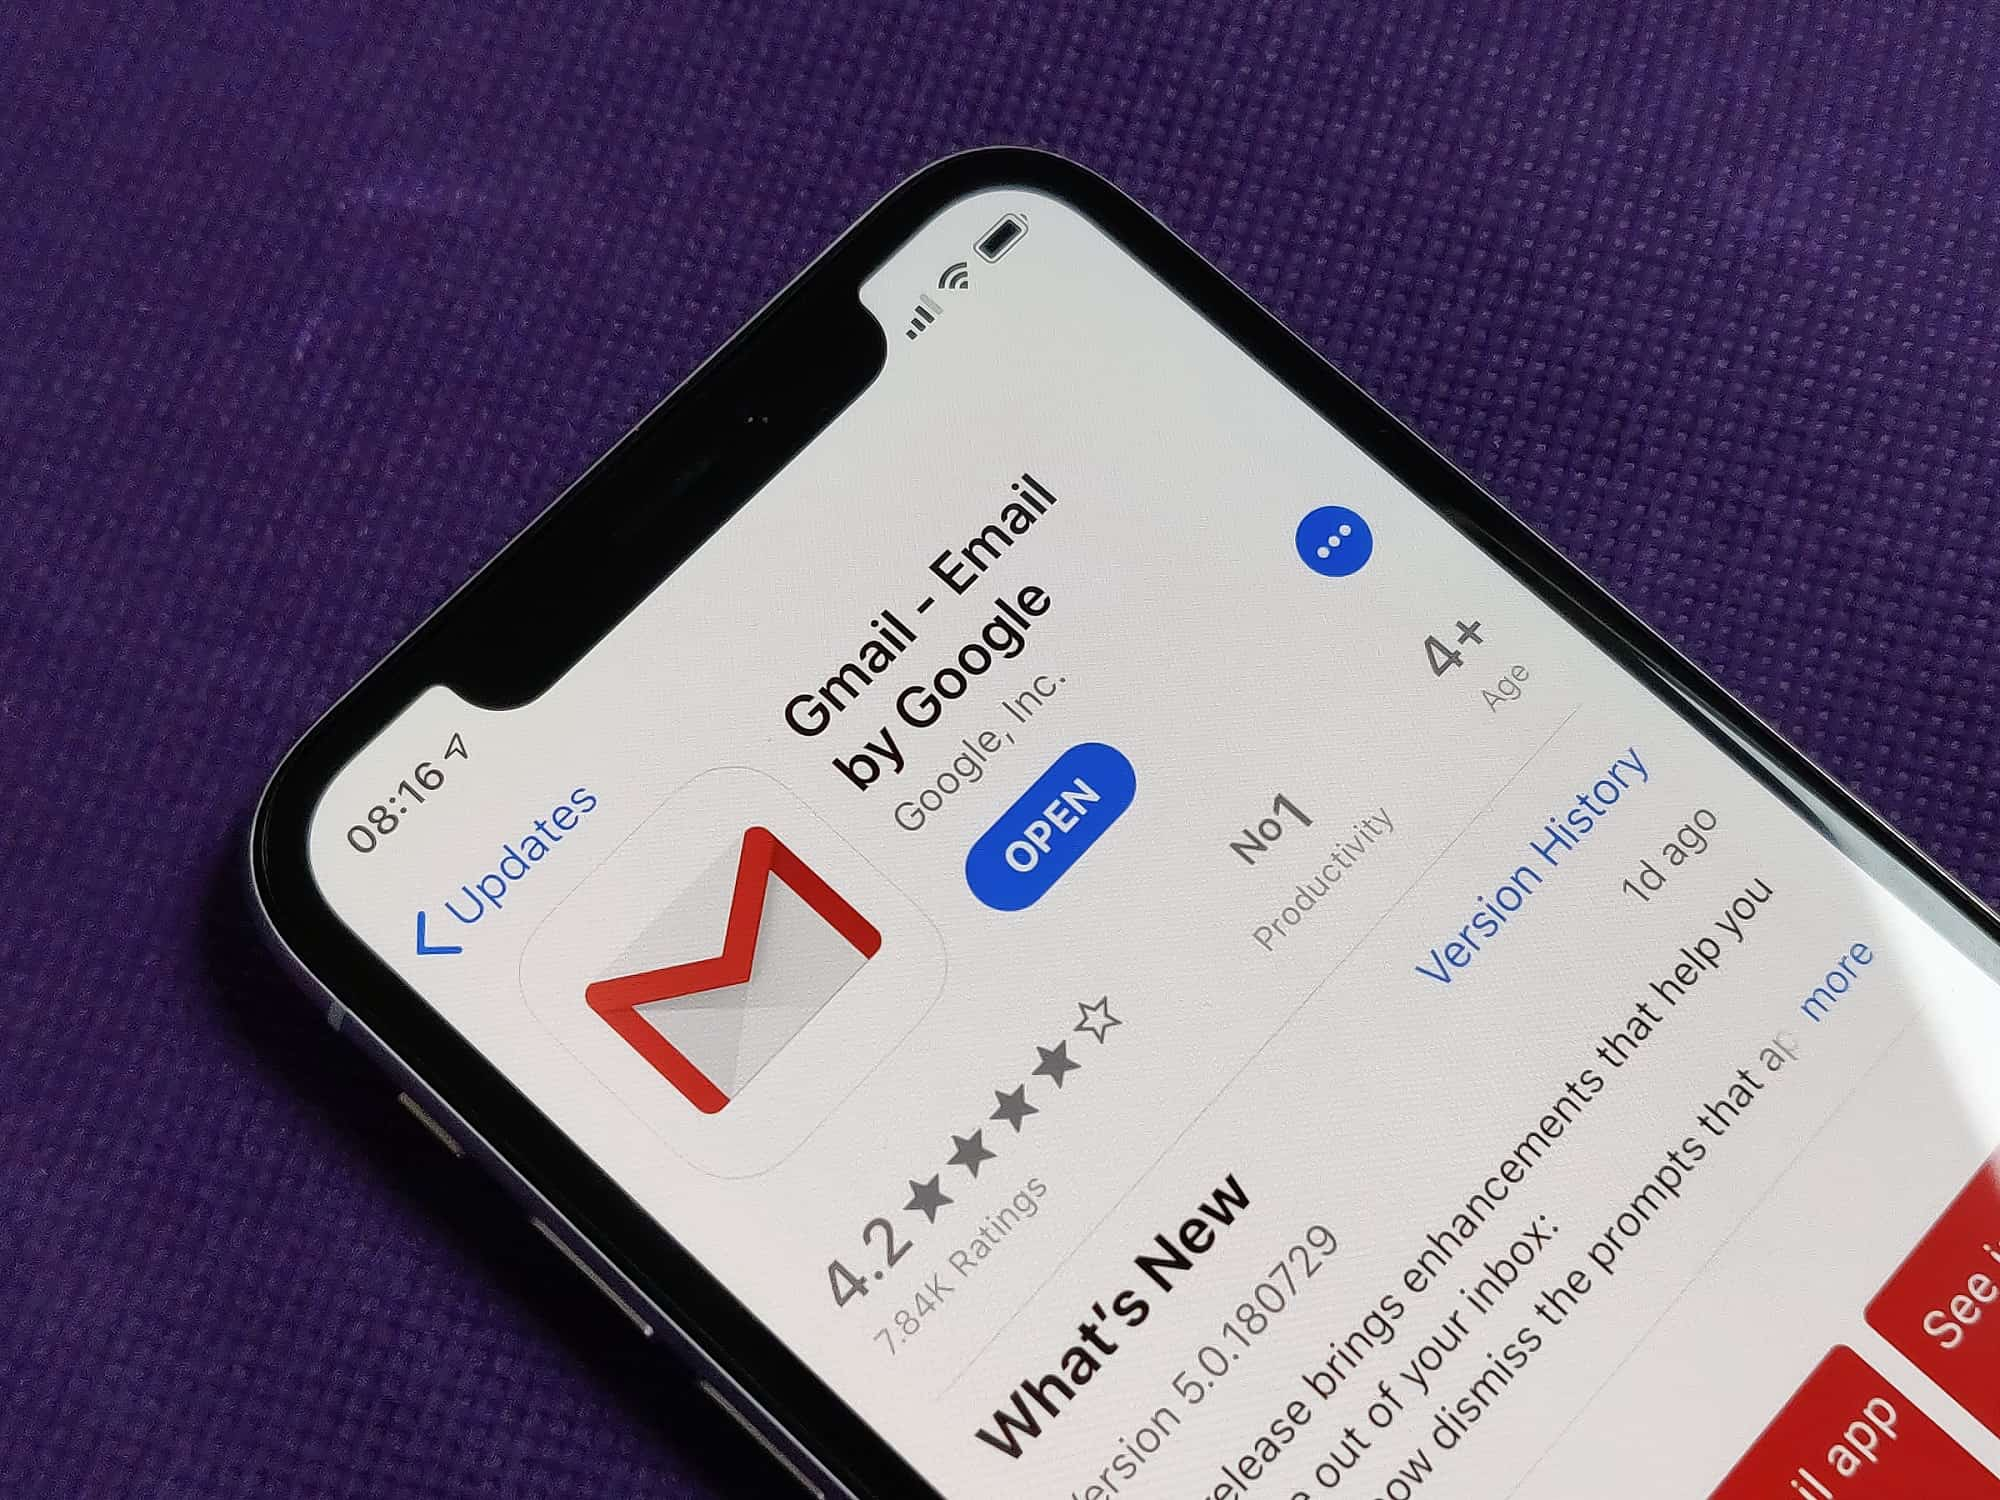 Gmail for iOS Update Changes the Way People Add Attachments